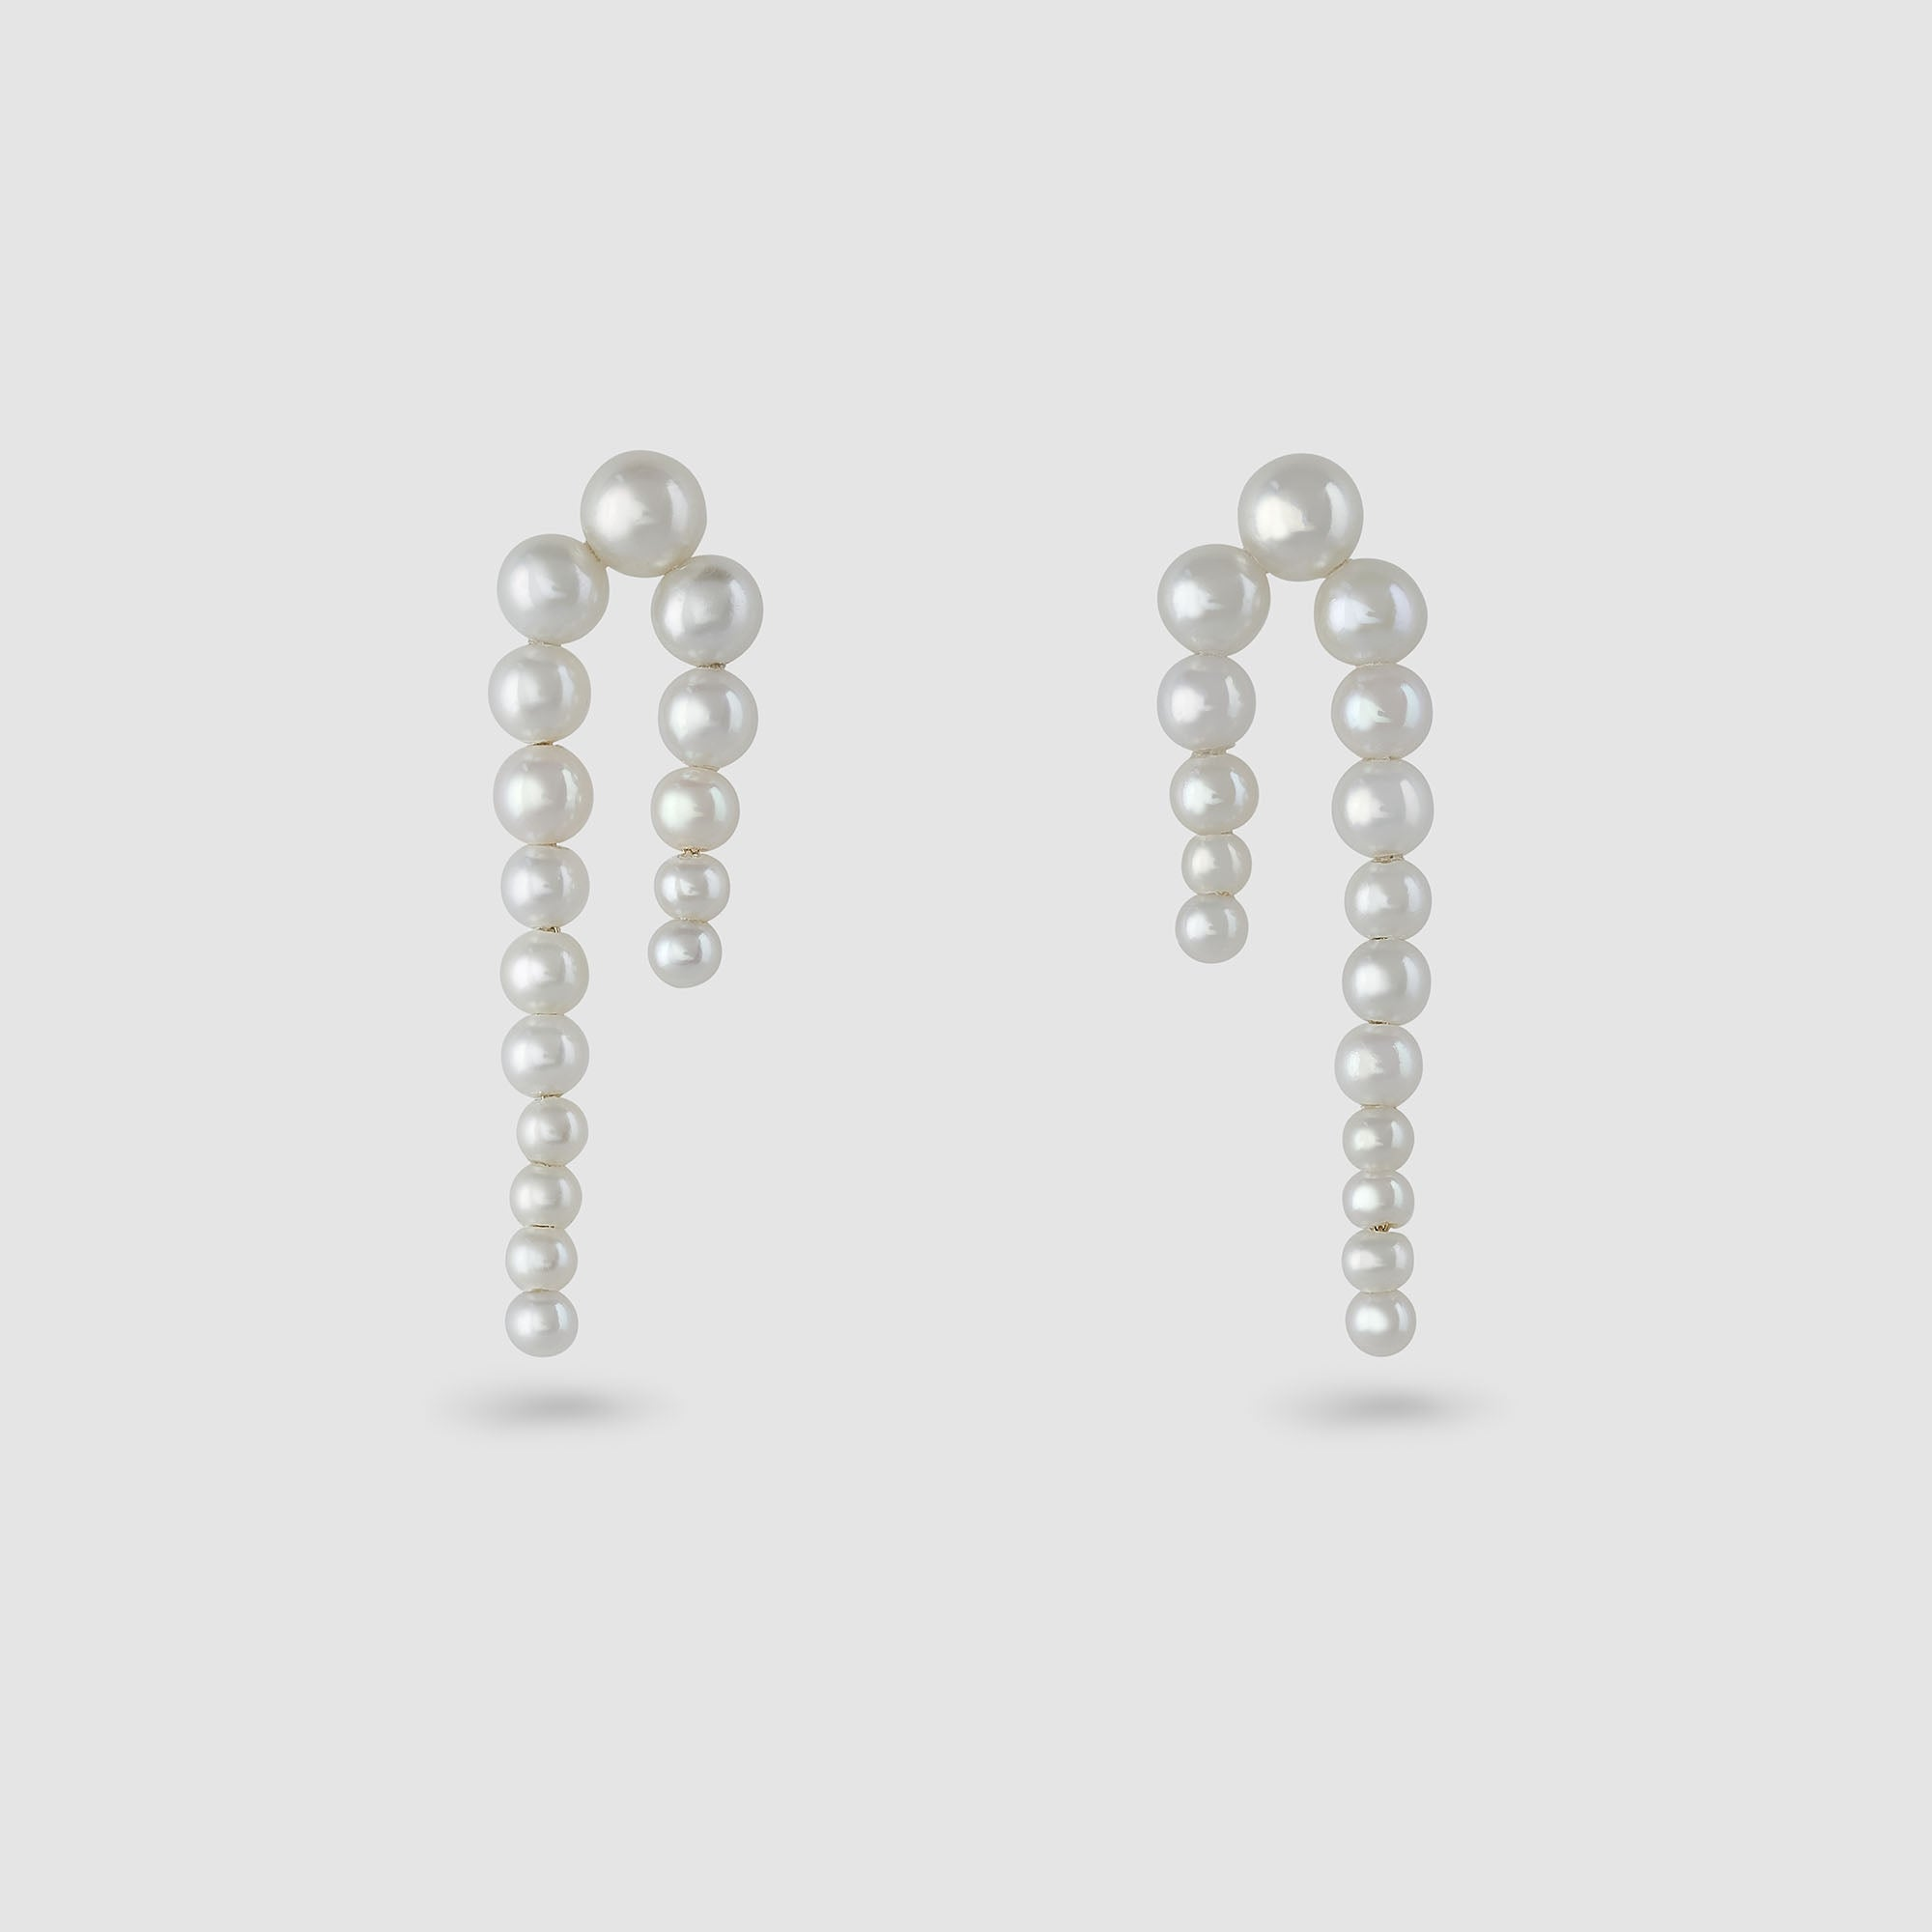 Sophie Bille Brahe Petite Perle Nuit Earrings